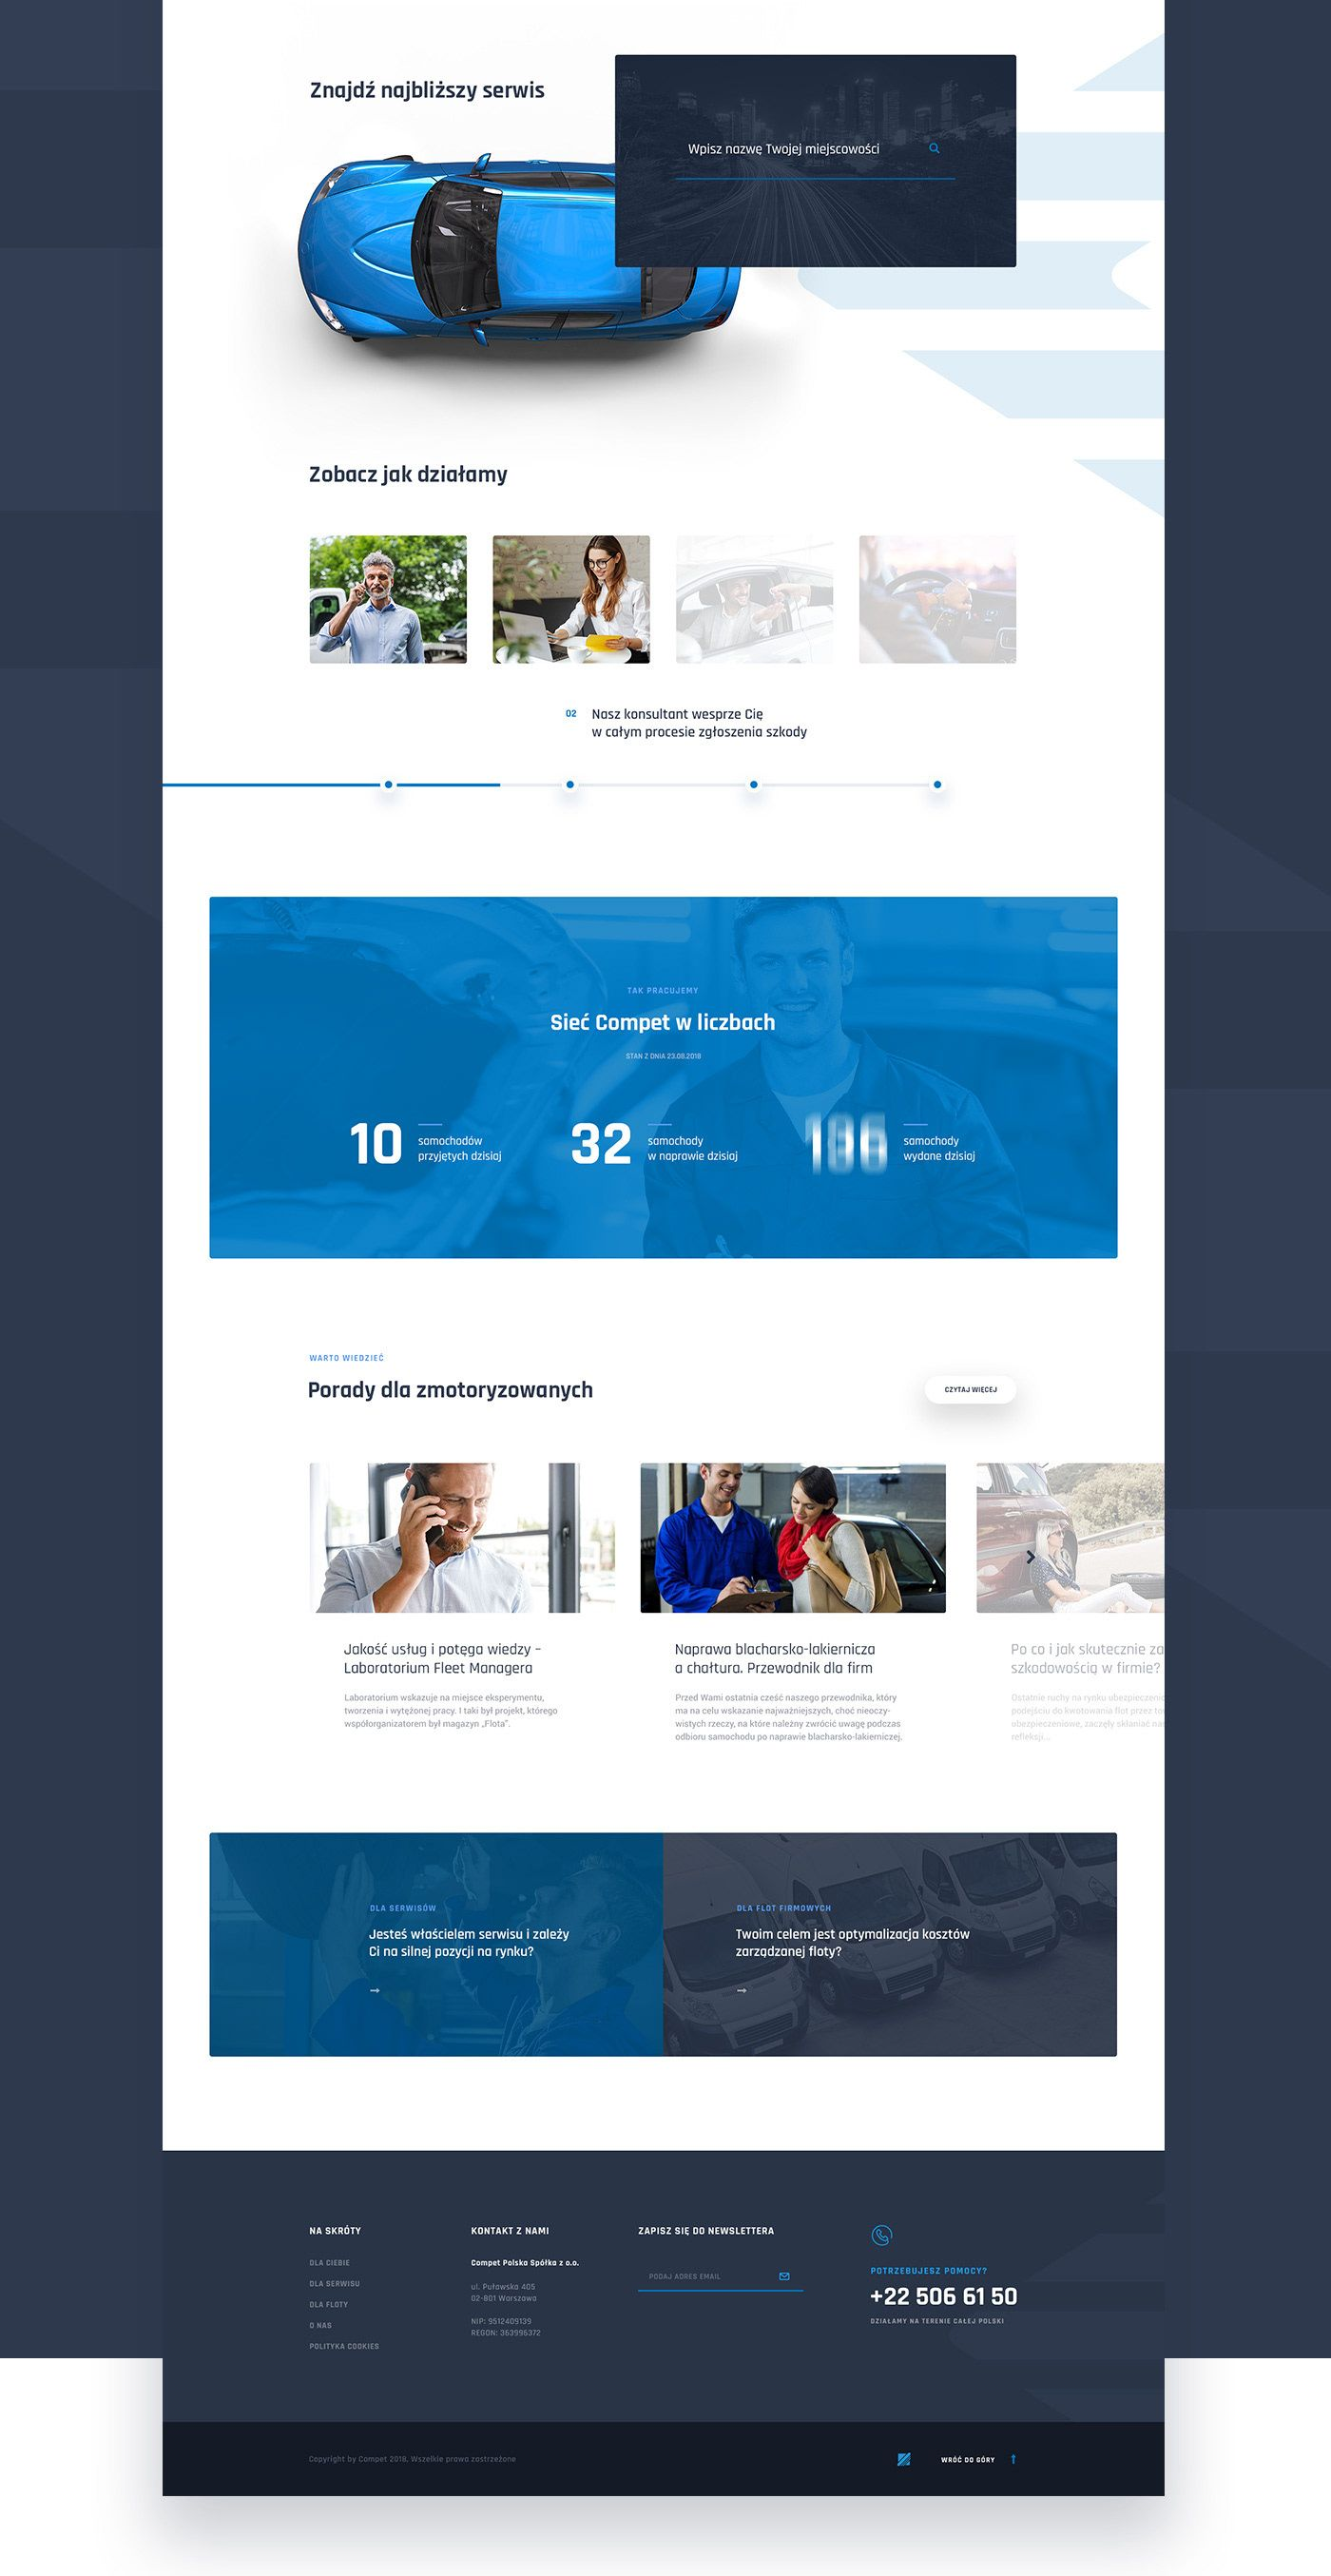 Compet Network Of Car Services On Behance Blog Themes Wordpress Design Your Own Website Web Design